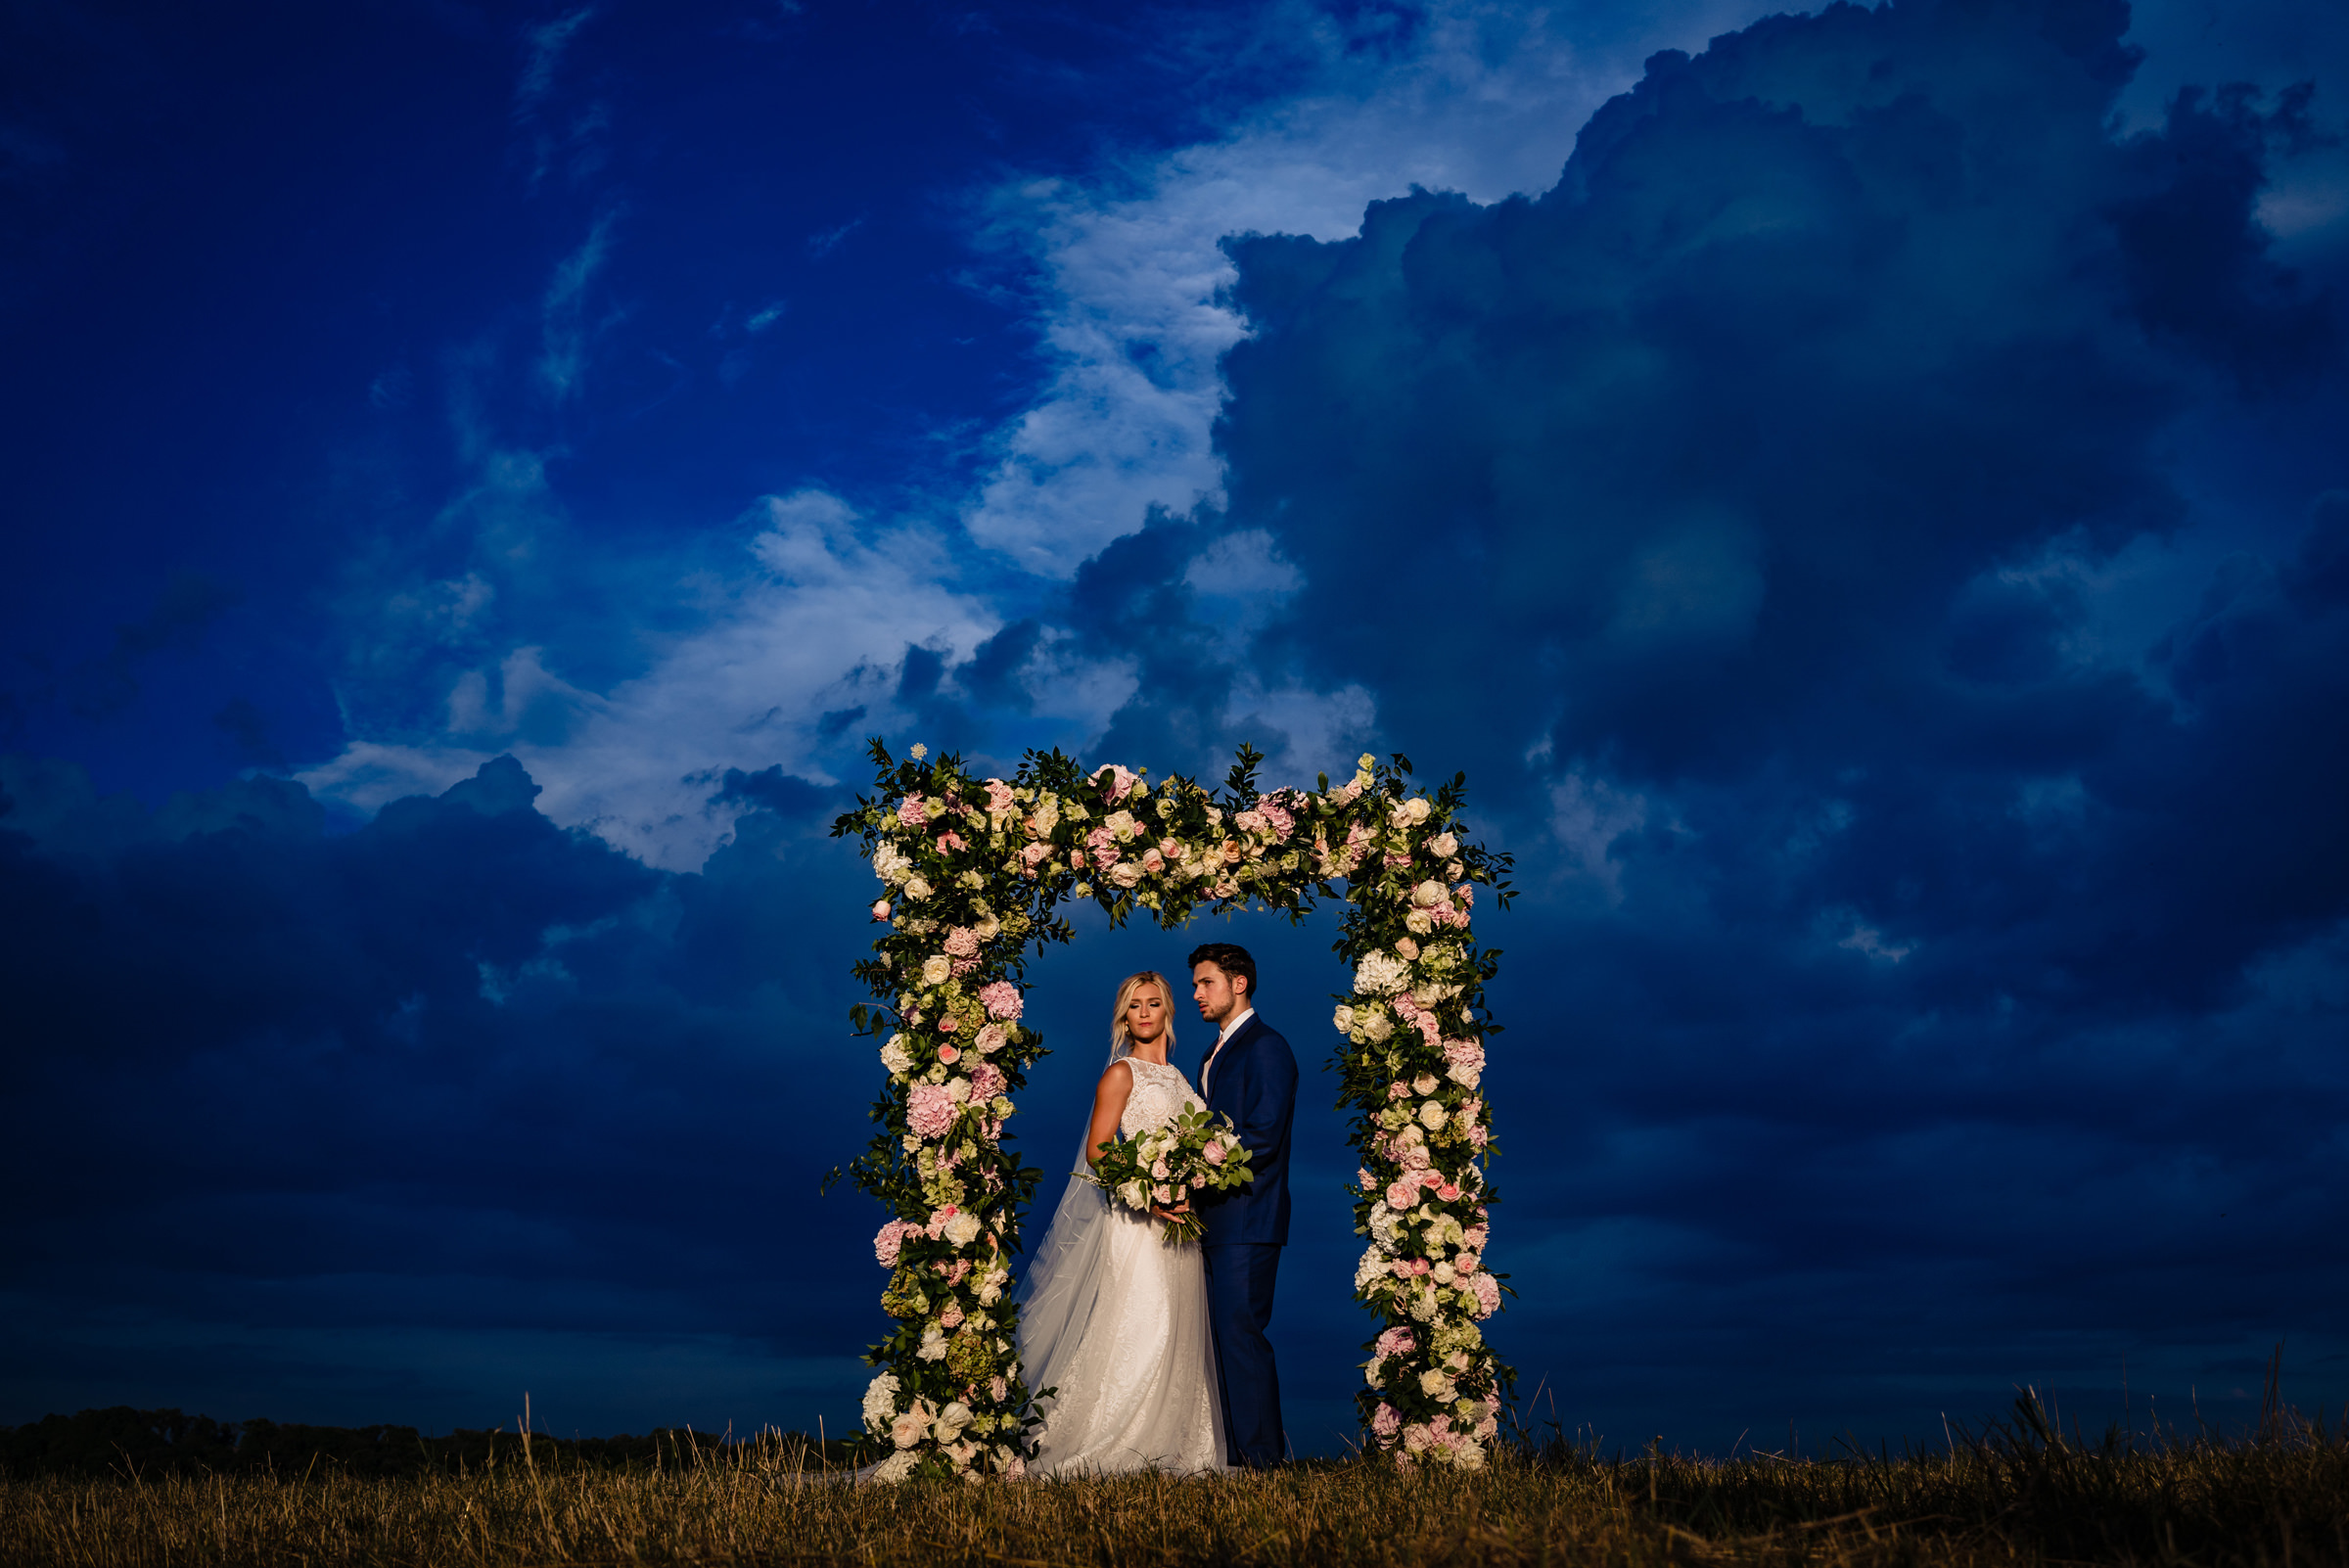 bride and groom portrait under a floral arbor at twilight-Arkansas photographer- photo by Vinson Images